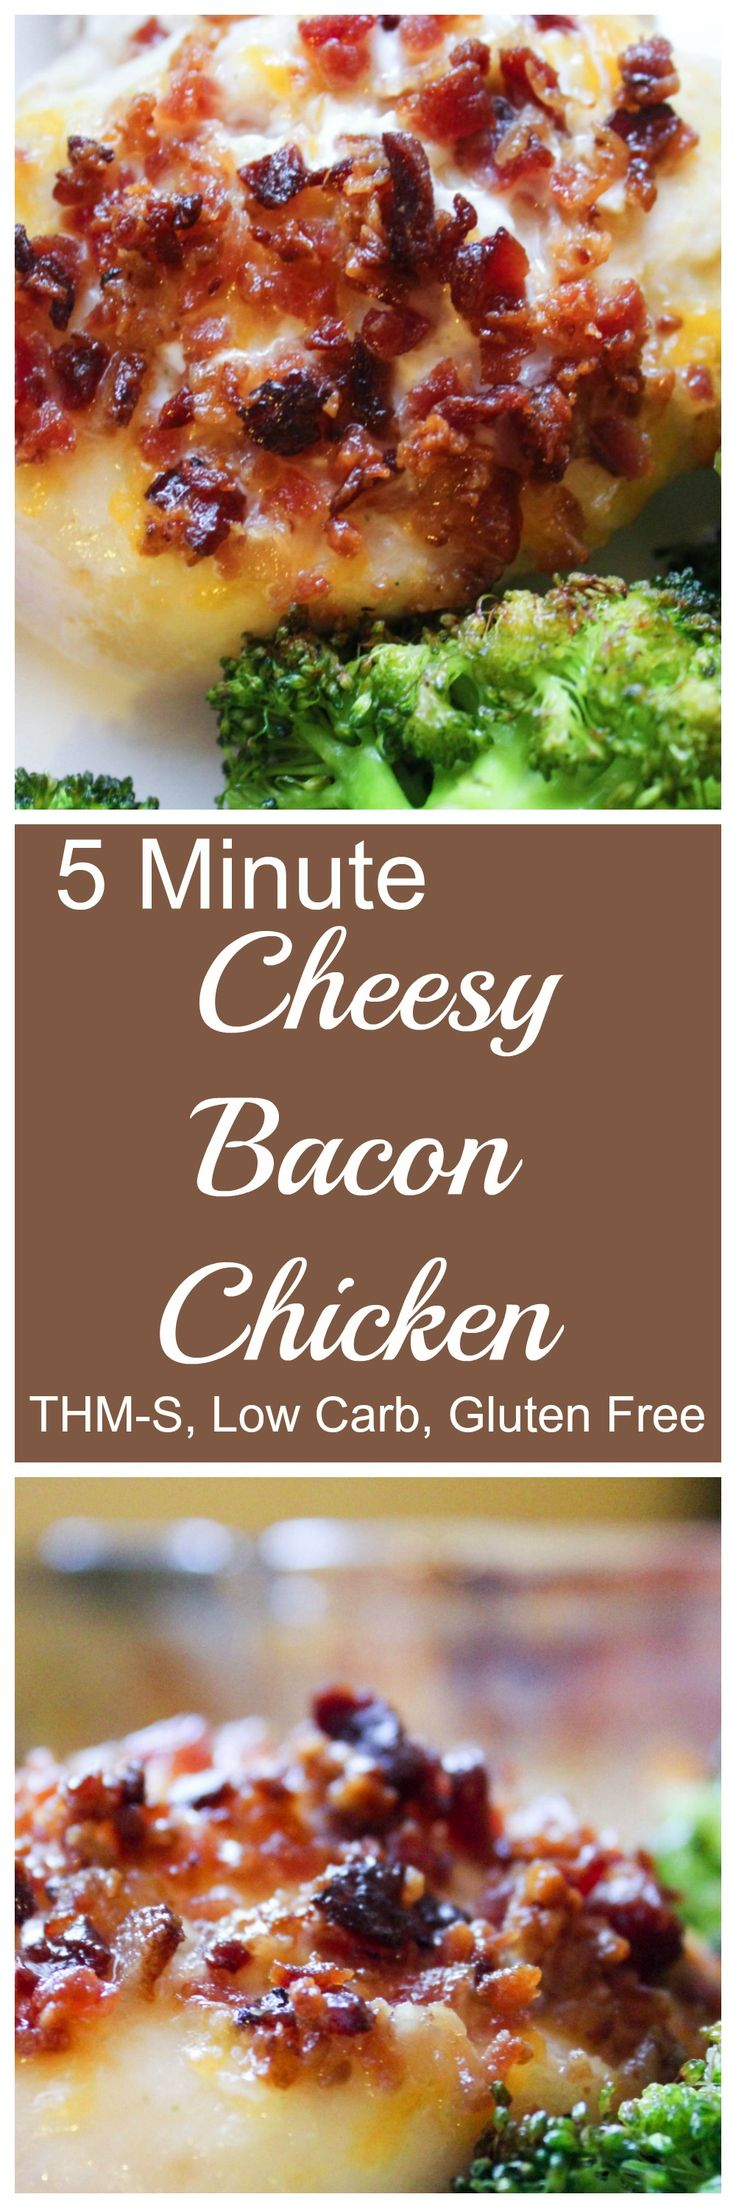 5-Minute Cheesy Bacon Chicken {THM-S, Low Carb}